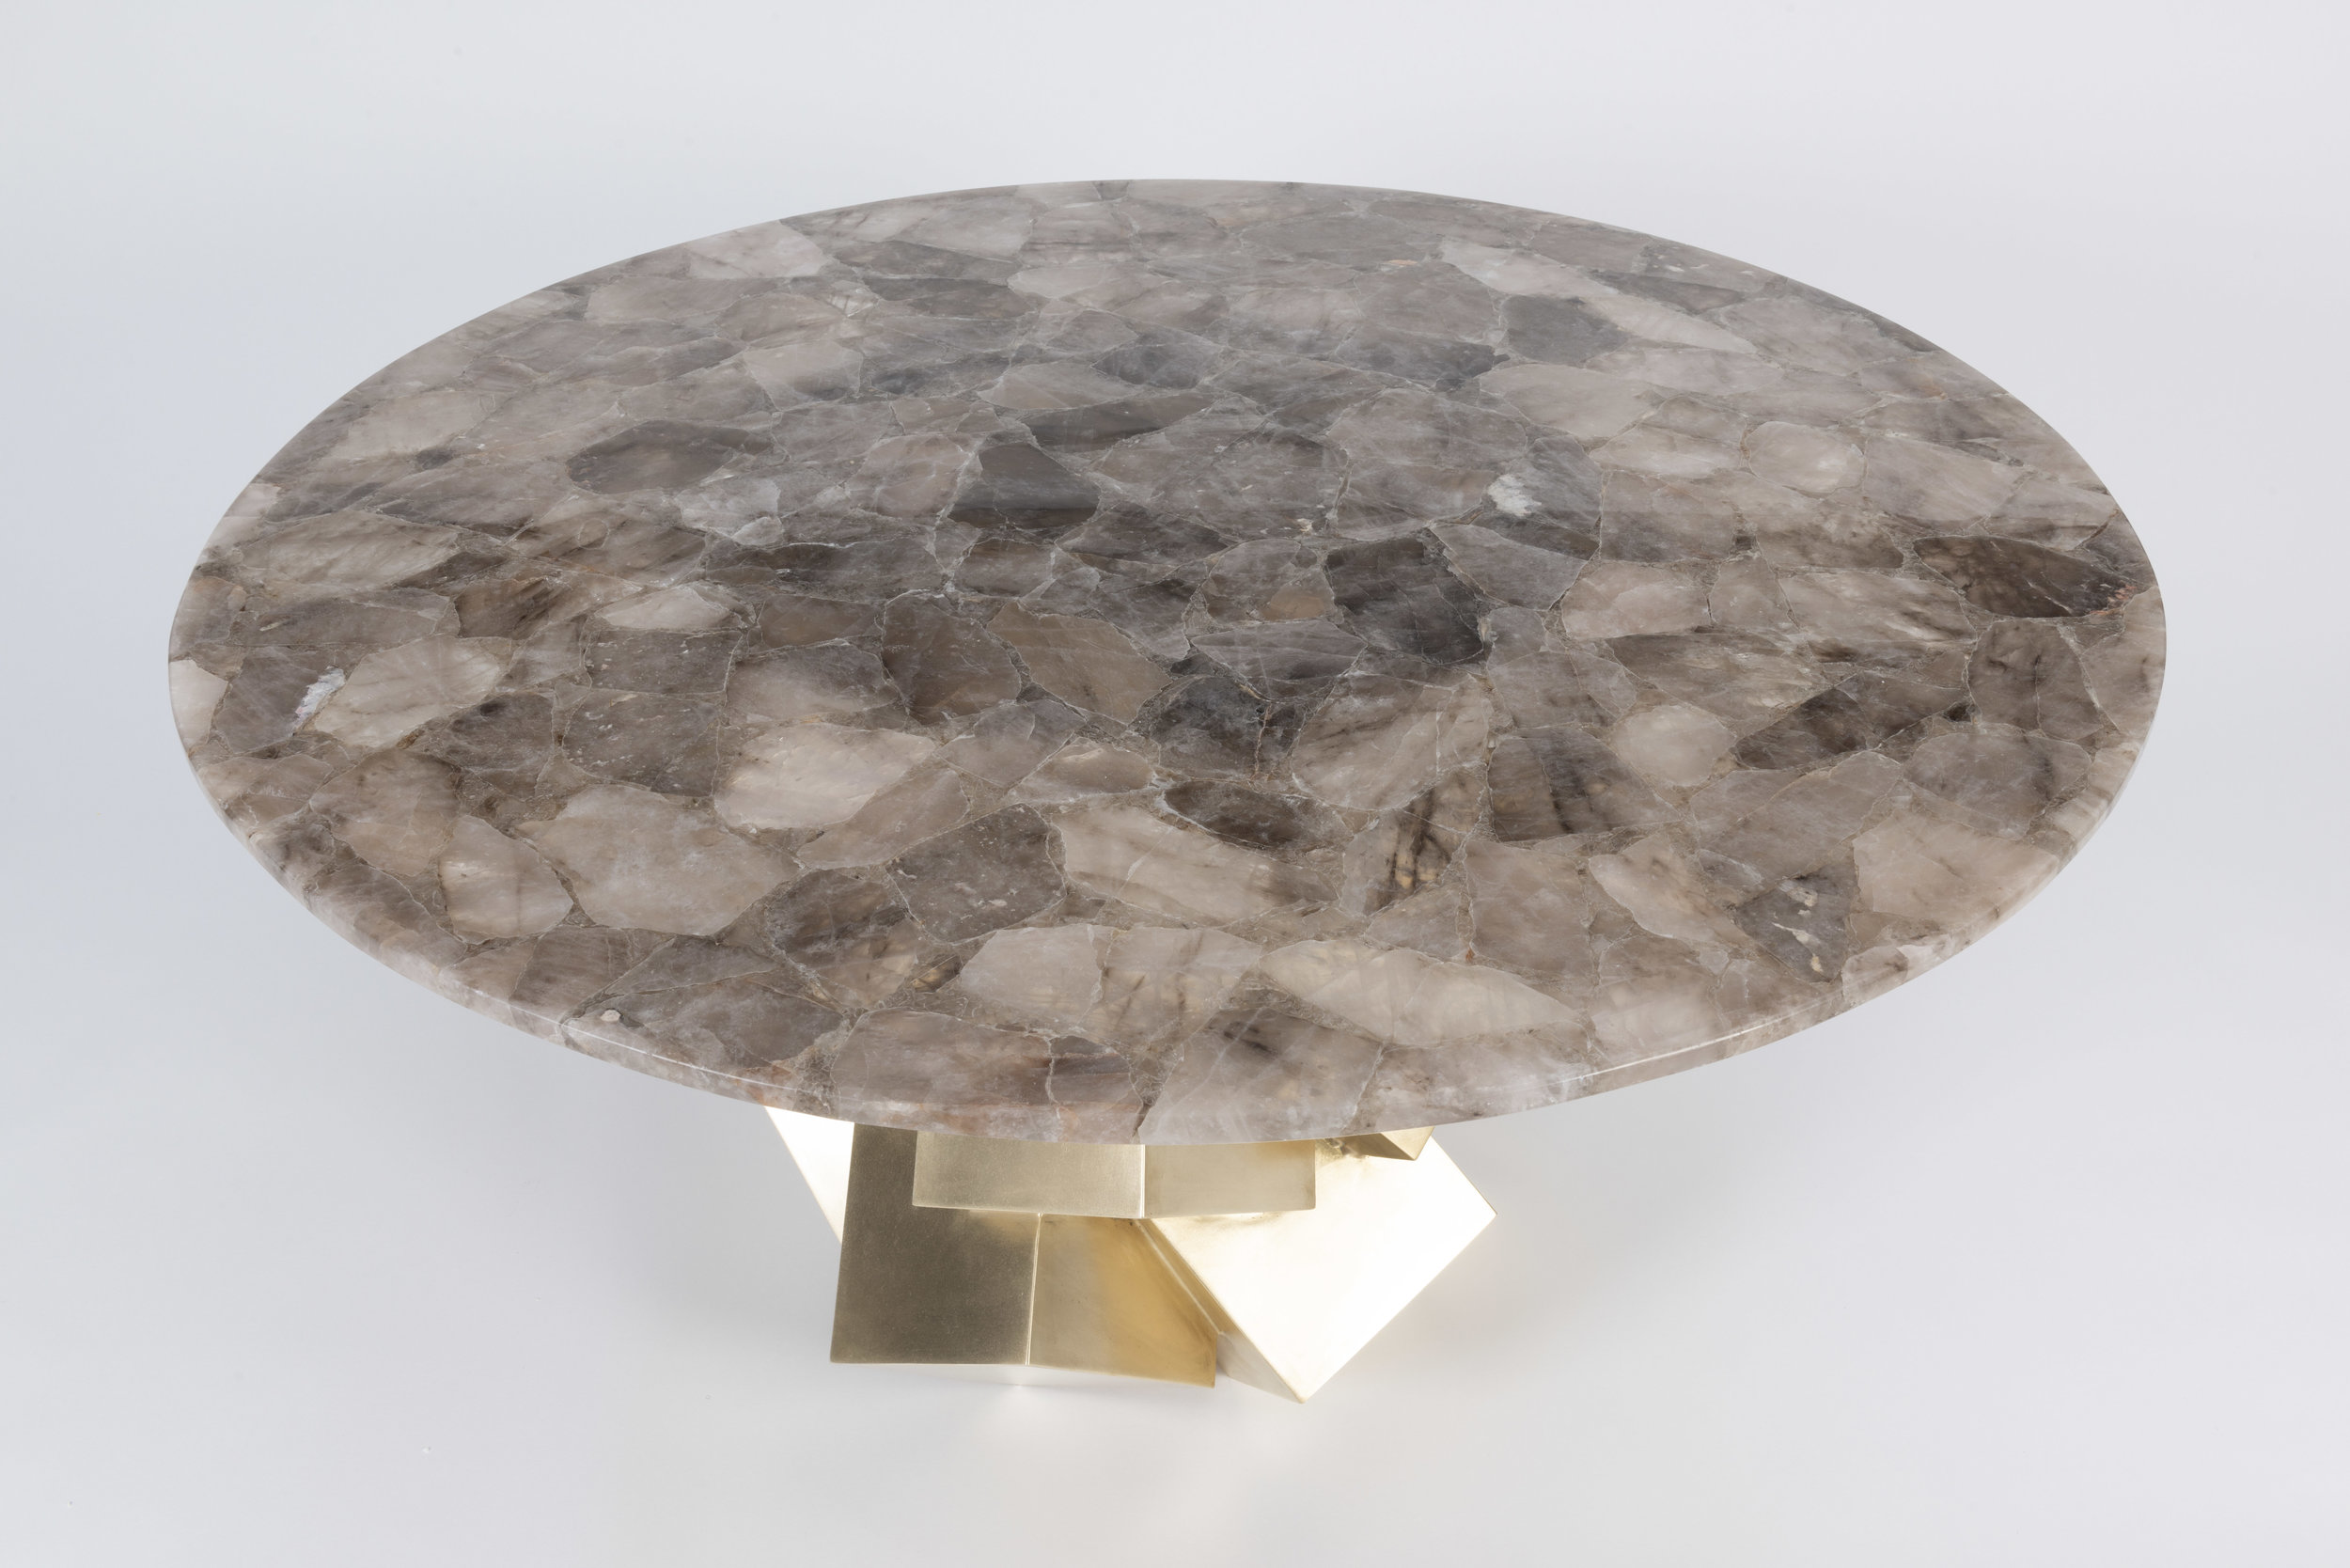 pyrite-table-012.jpg